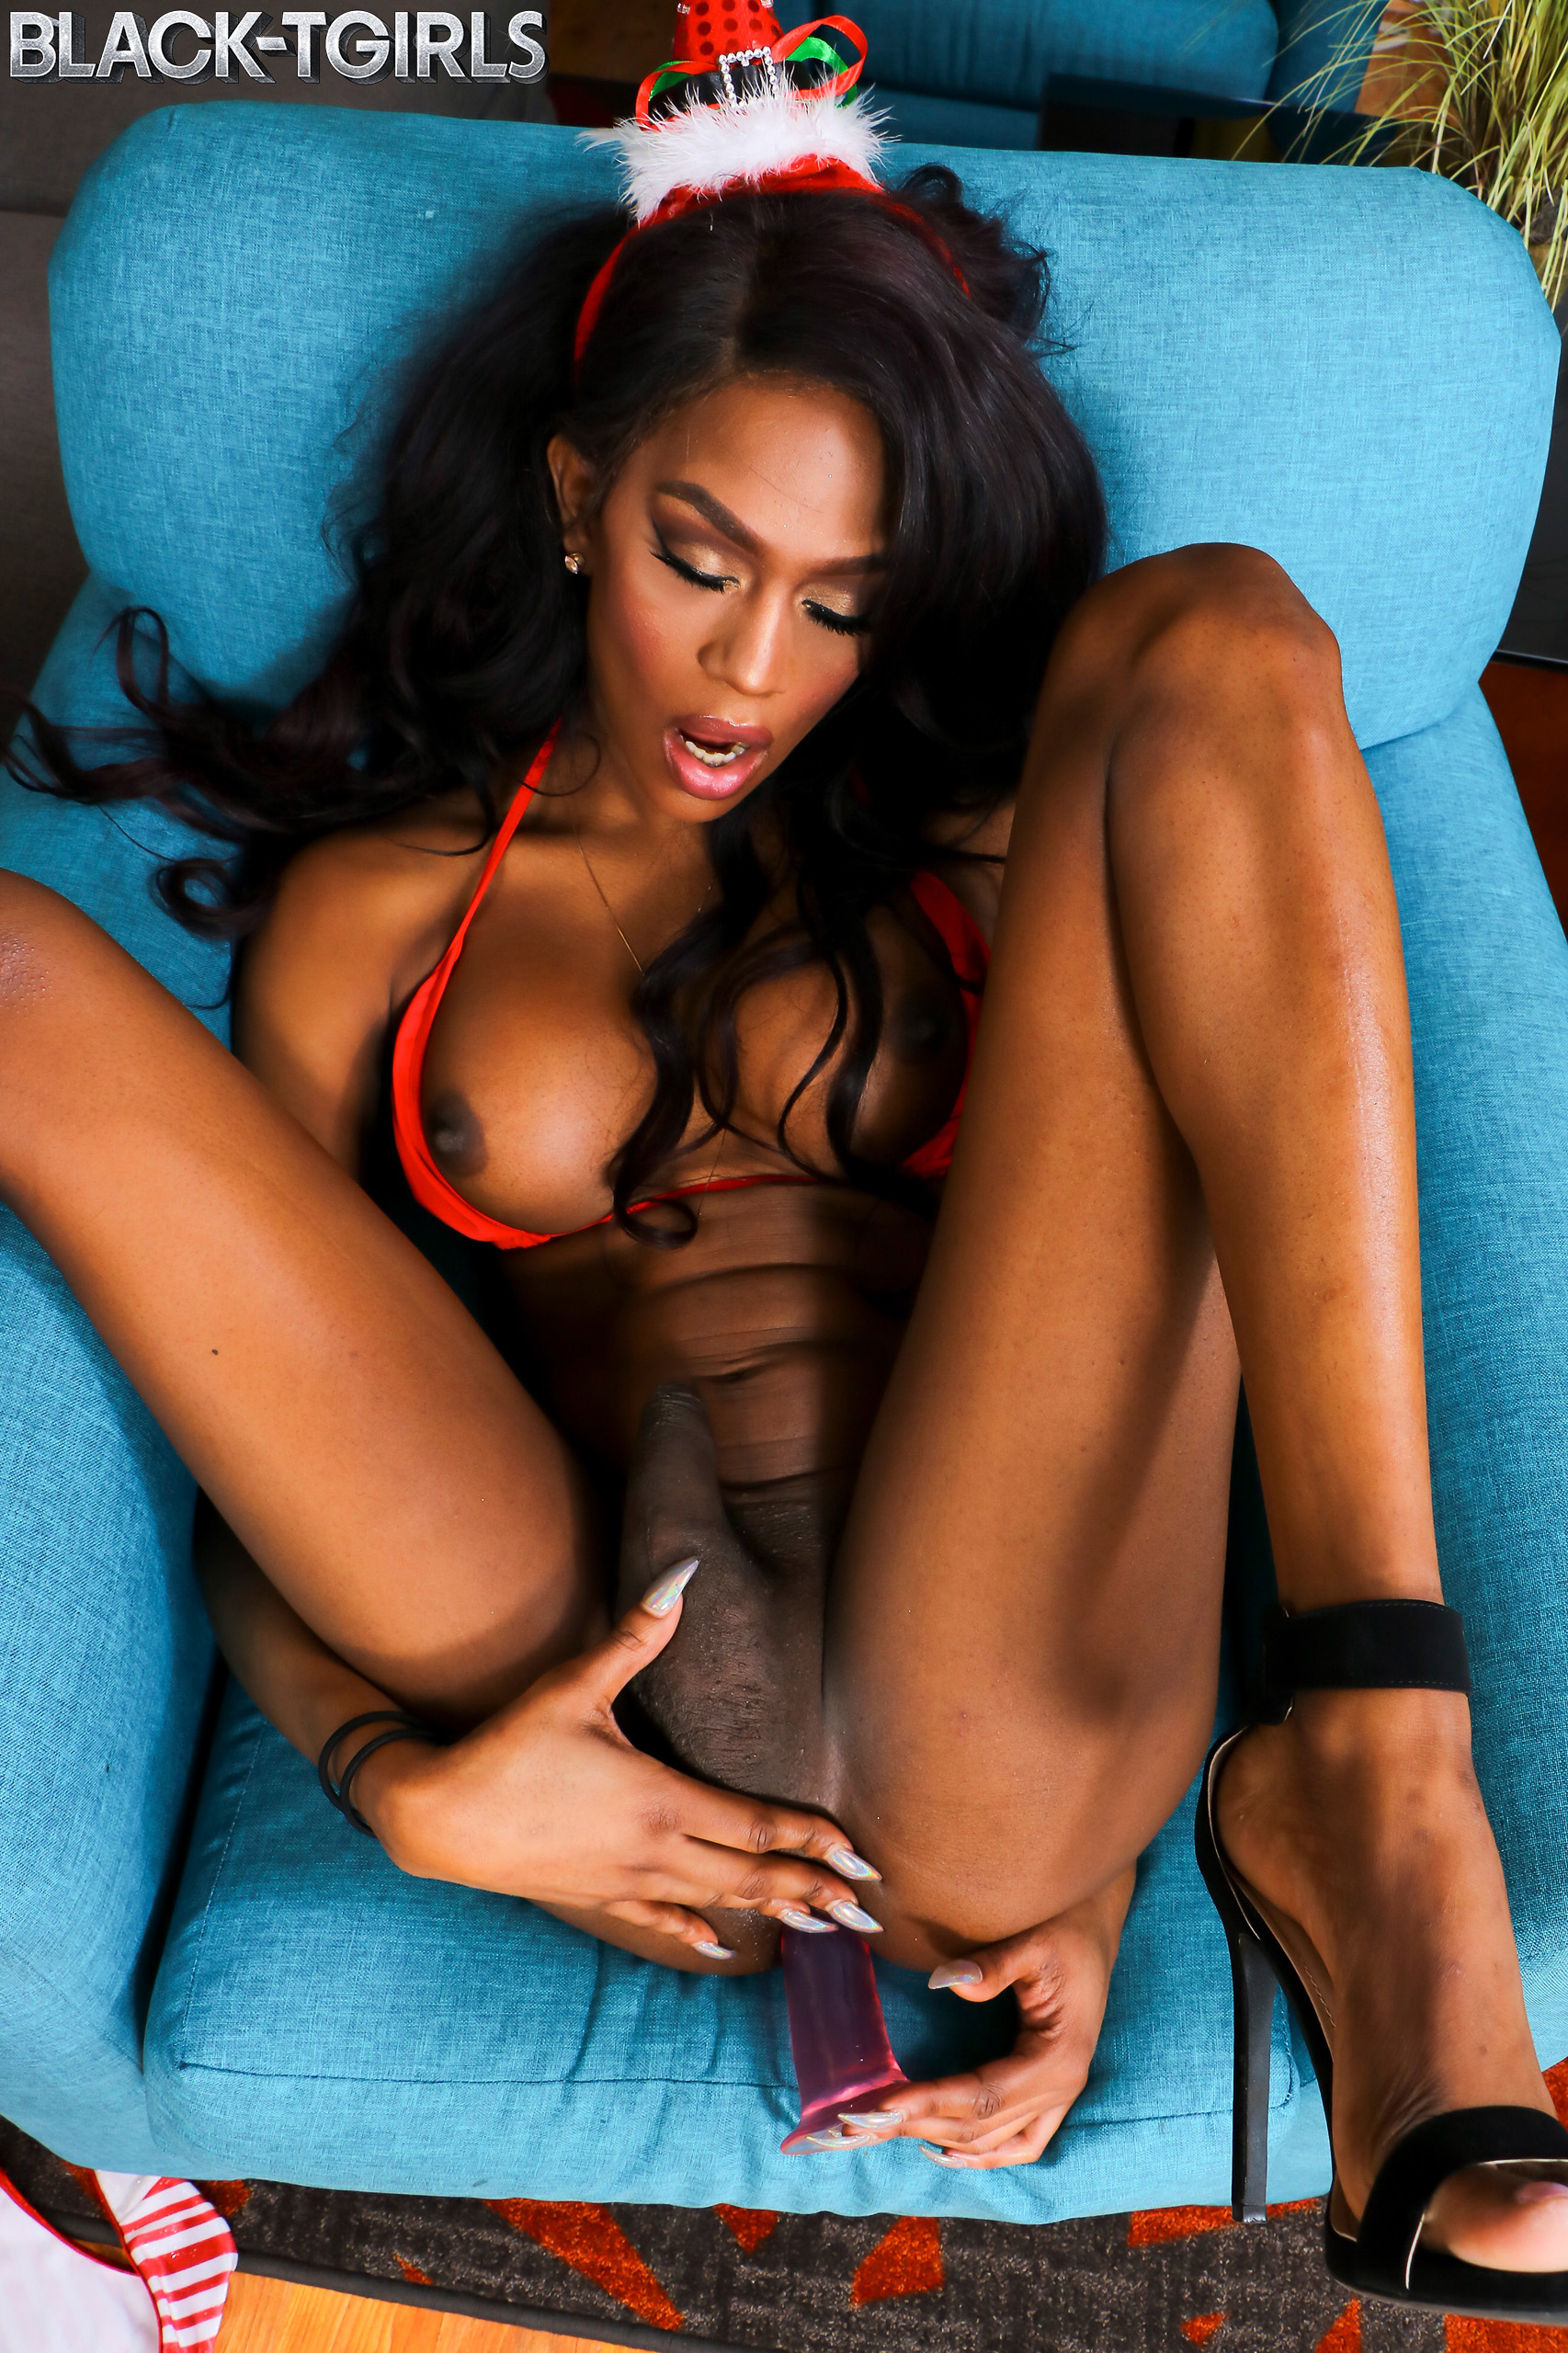 black tgirls archives – grooby